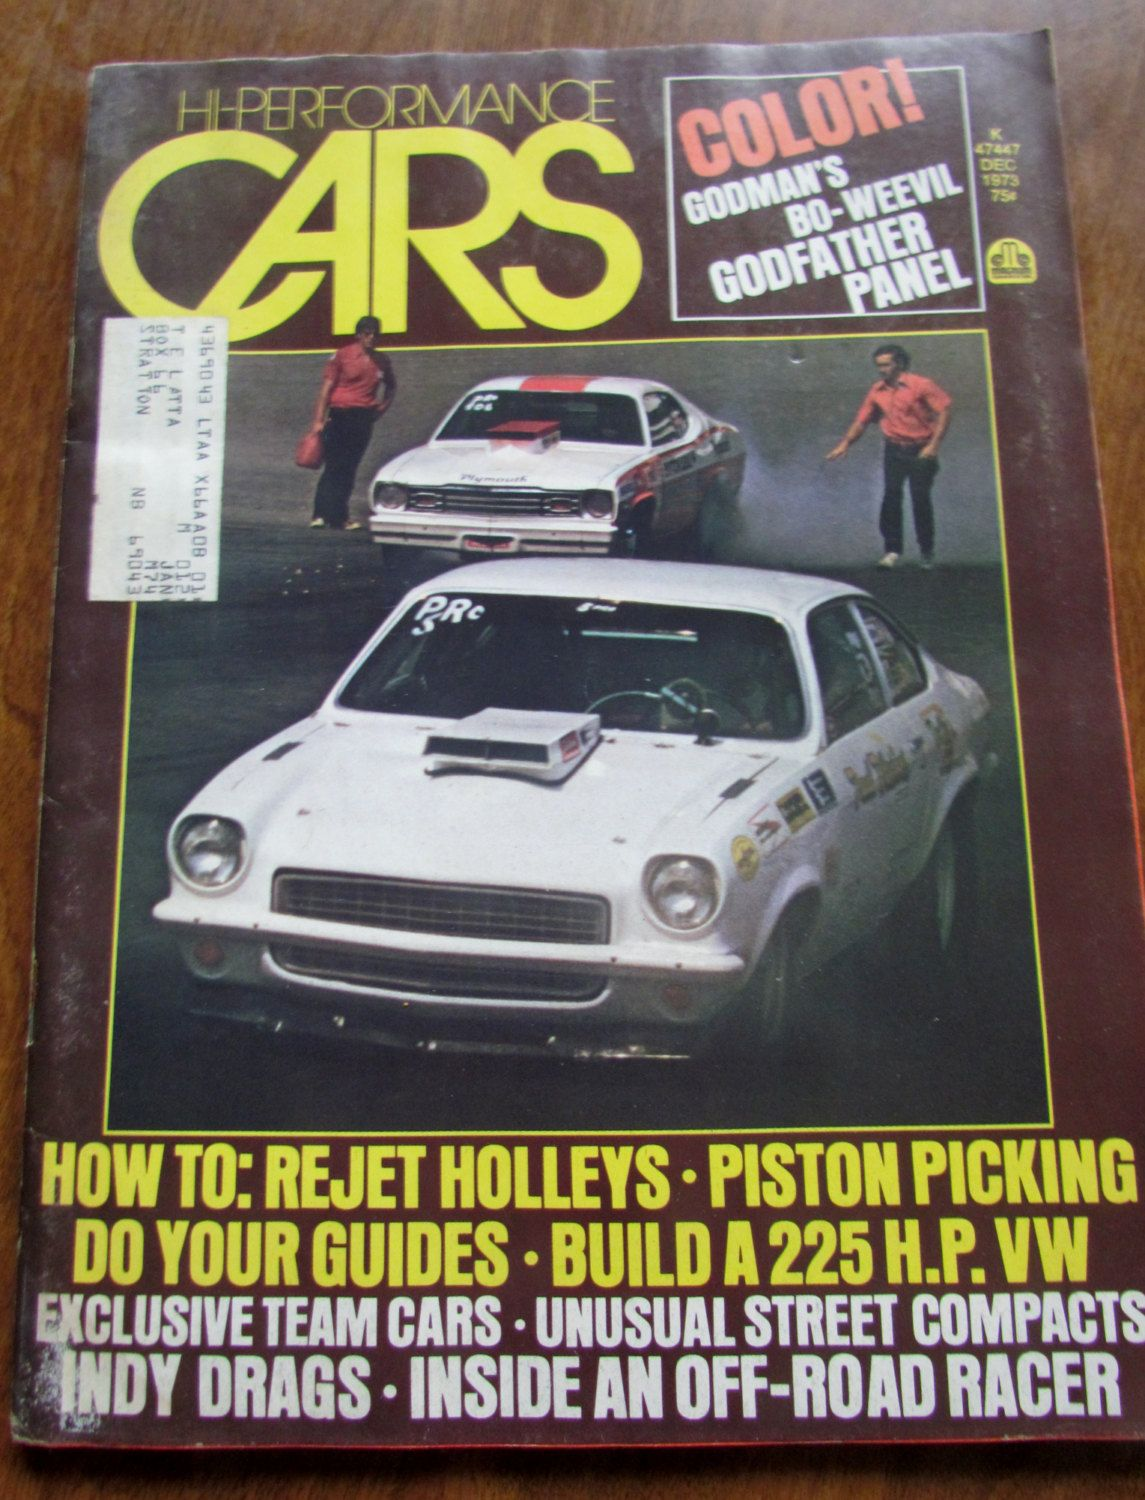 Hi Performance Cars Magazine Dec. 1973 by VintageEtcEtc on Etsy